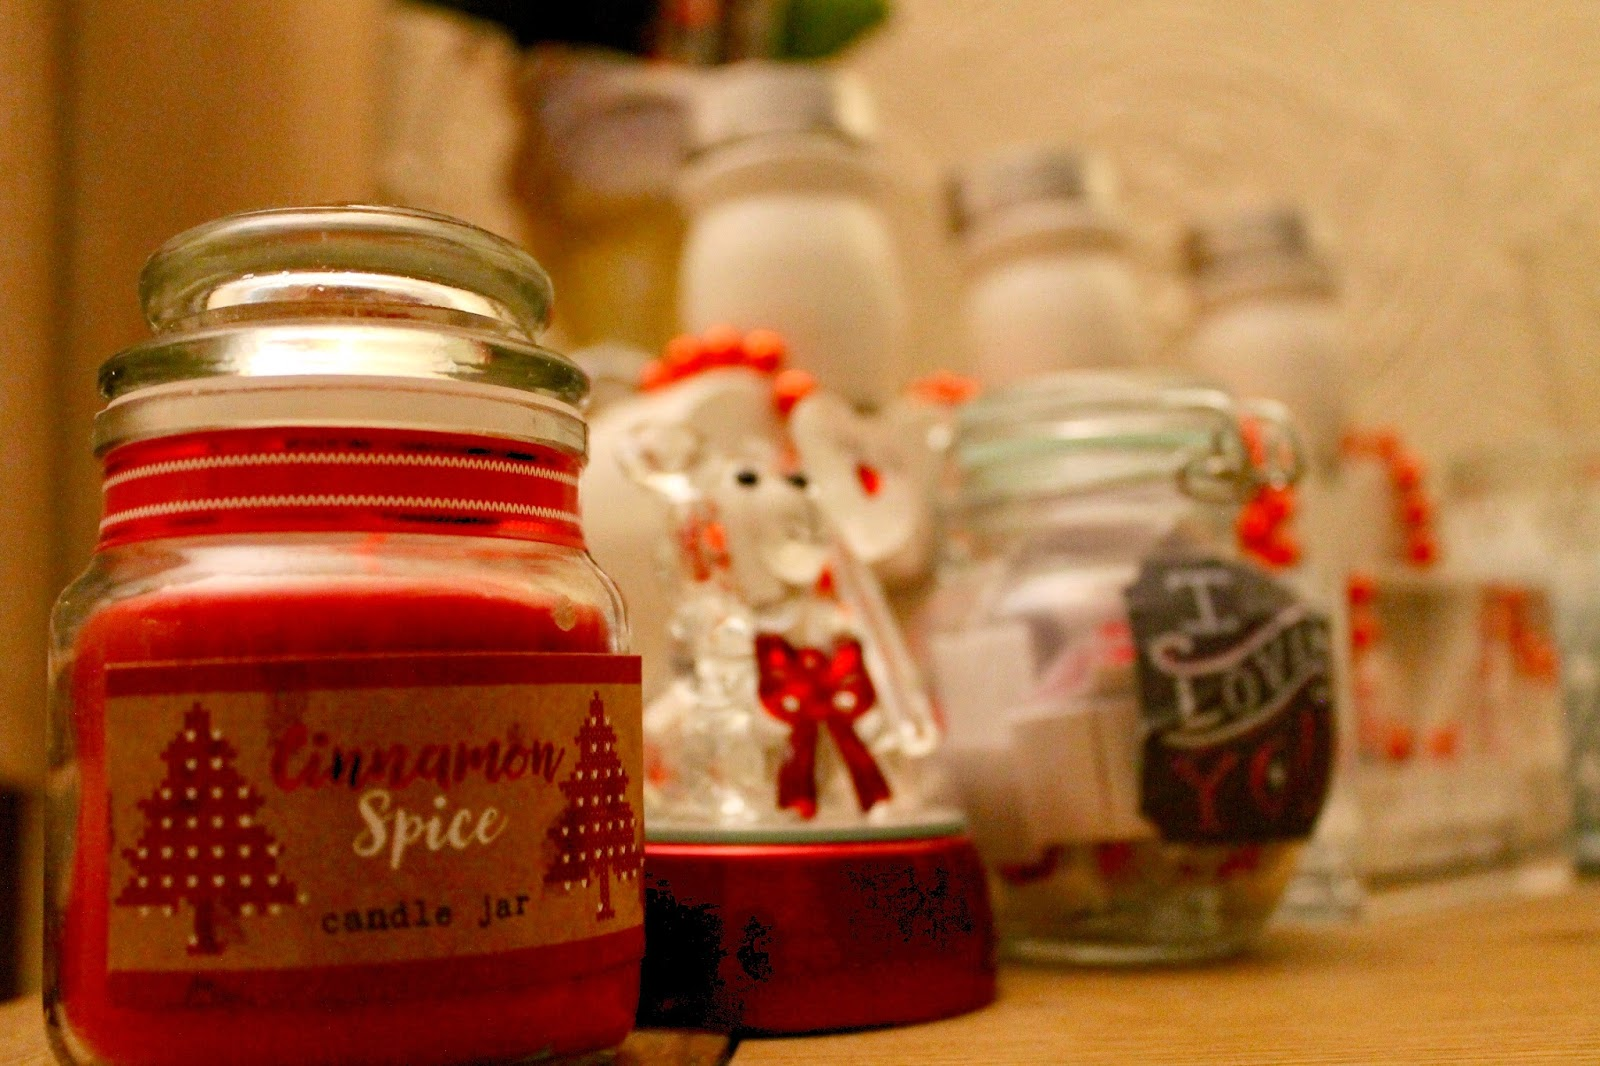 Cinnamon Spiced Festive Red Candle